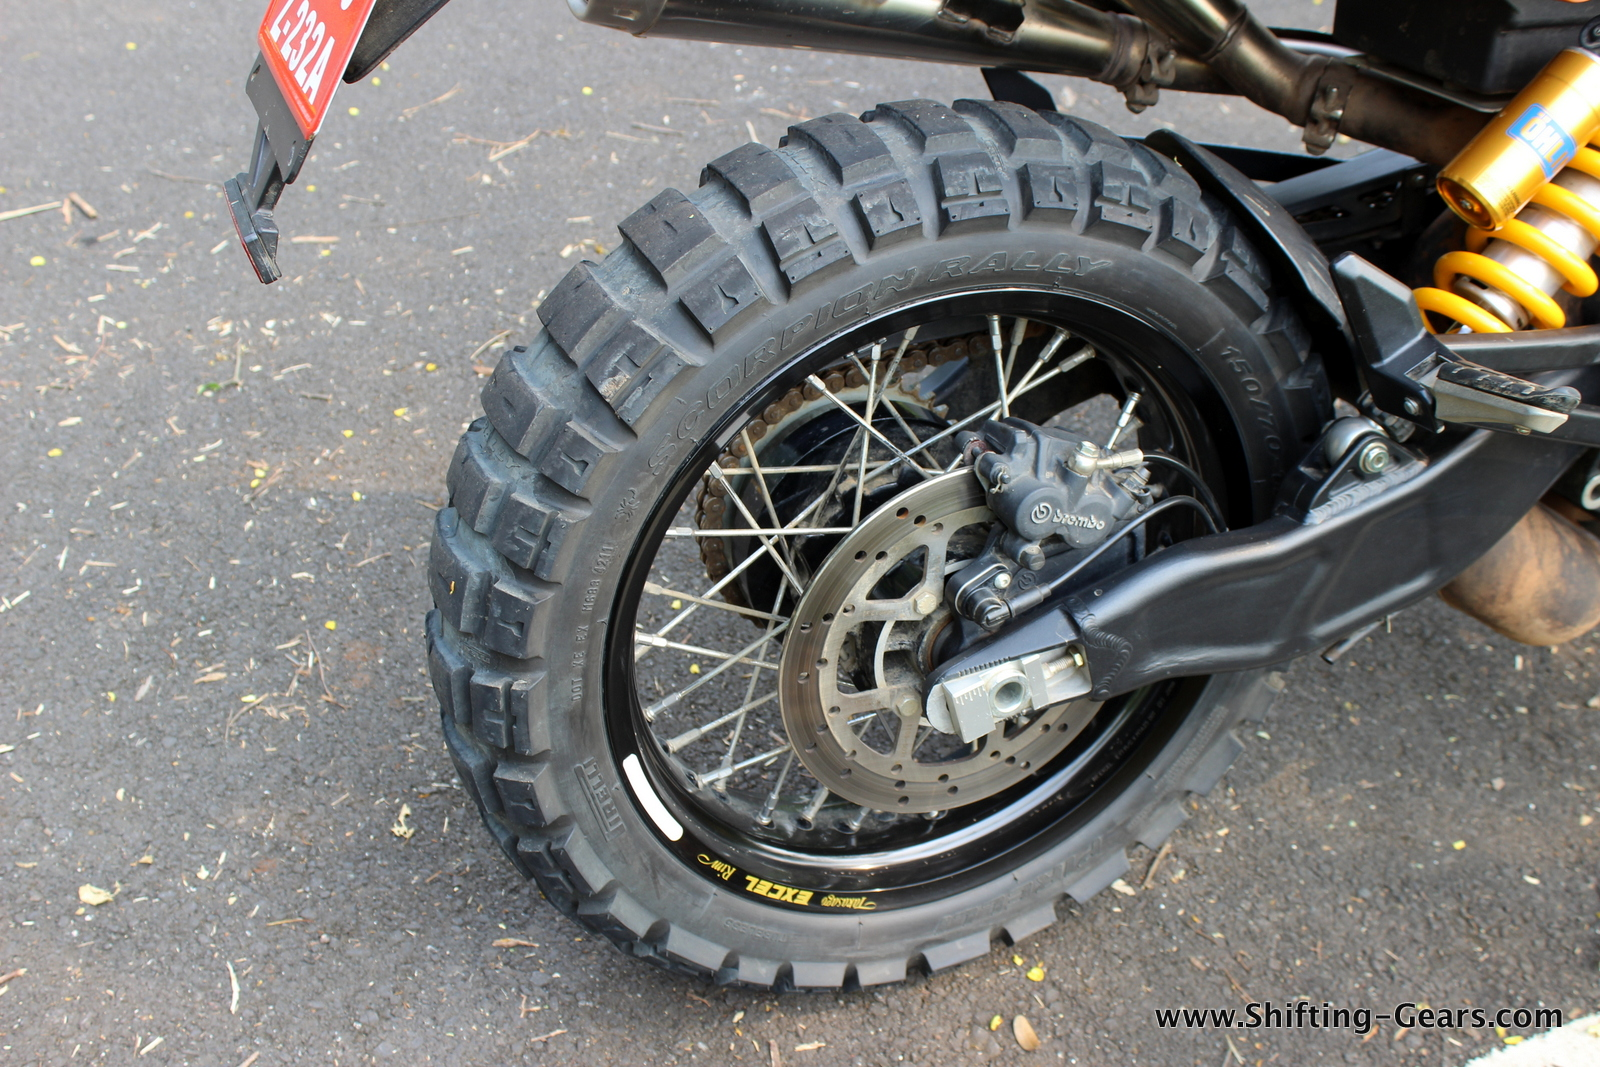 Knobby tyres work perfect on bad roads, but lack feedback on highways